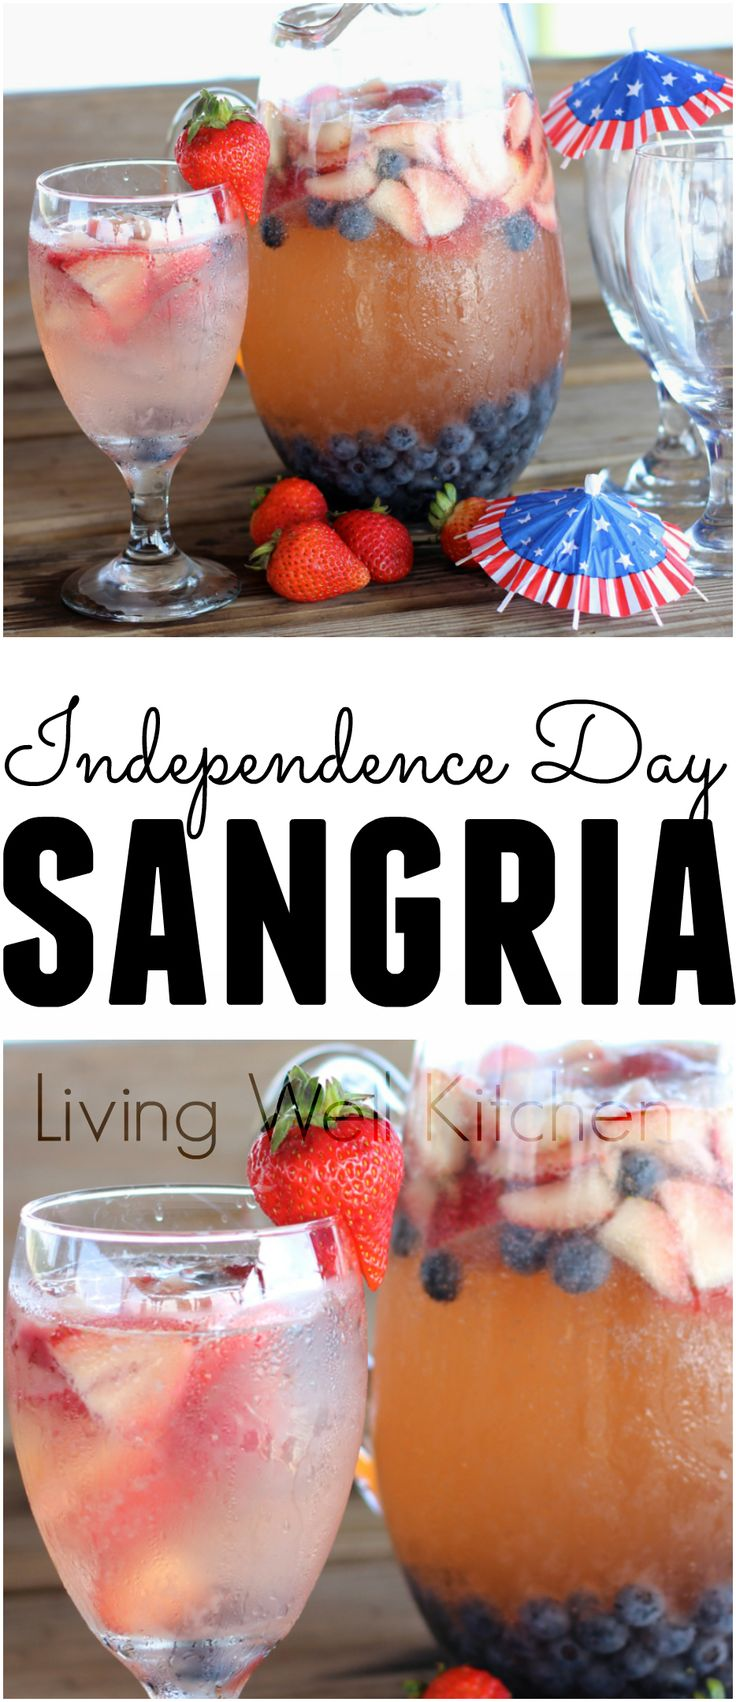 Independence Day Sangria is a festive and fun Red White & Blue Sangria perfect for celebrating on the Forth of July!